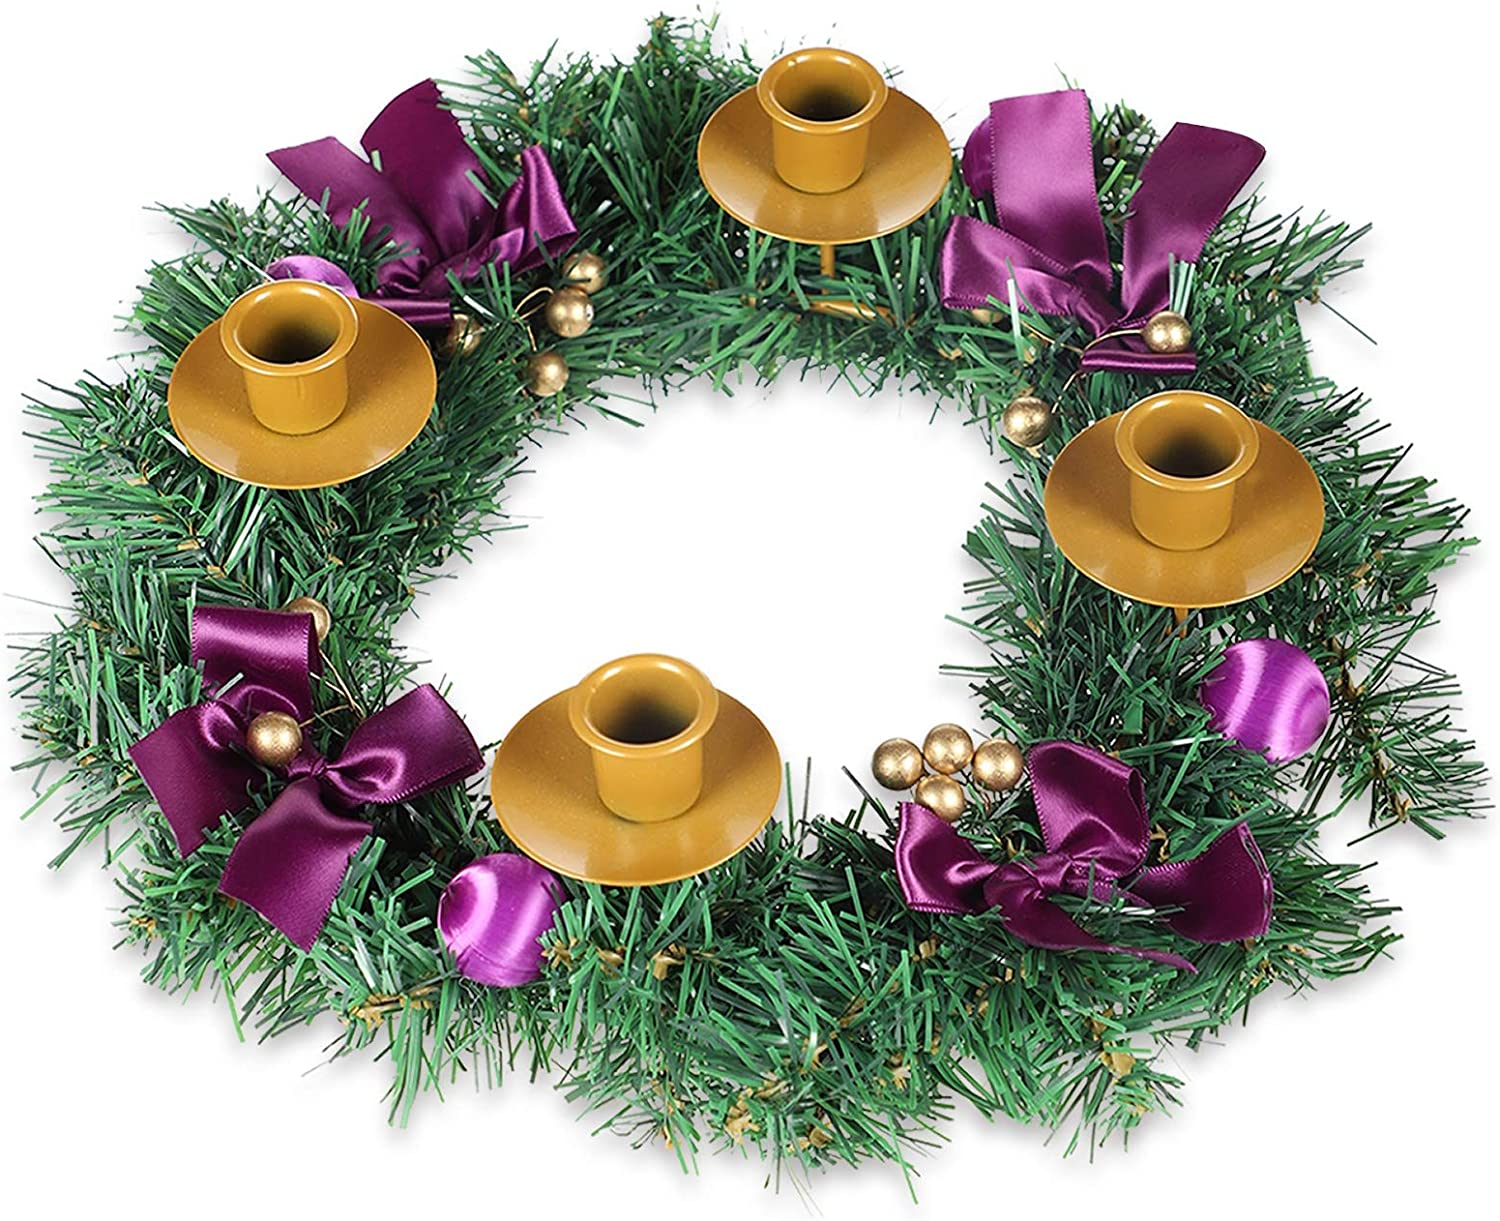 MorTime Christmas Advent Wreath, 14 in Purple Ribbon Christmas Wreath Advent Ring Candle Holder, Christmas Centerpiece Decoration with Glitter Berries for Winter Holidays Home Decor